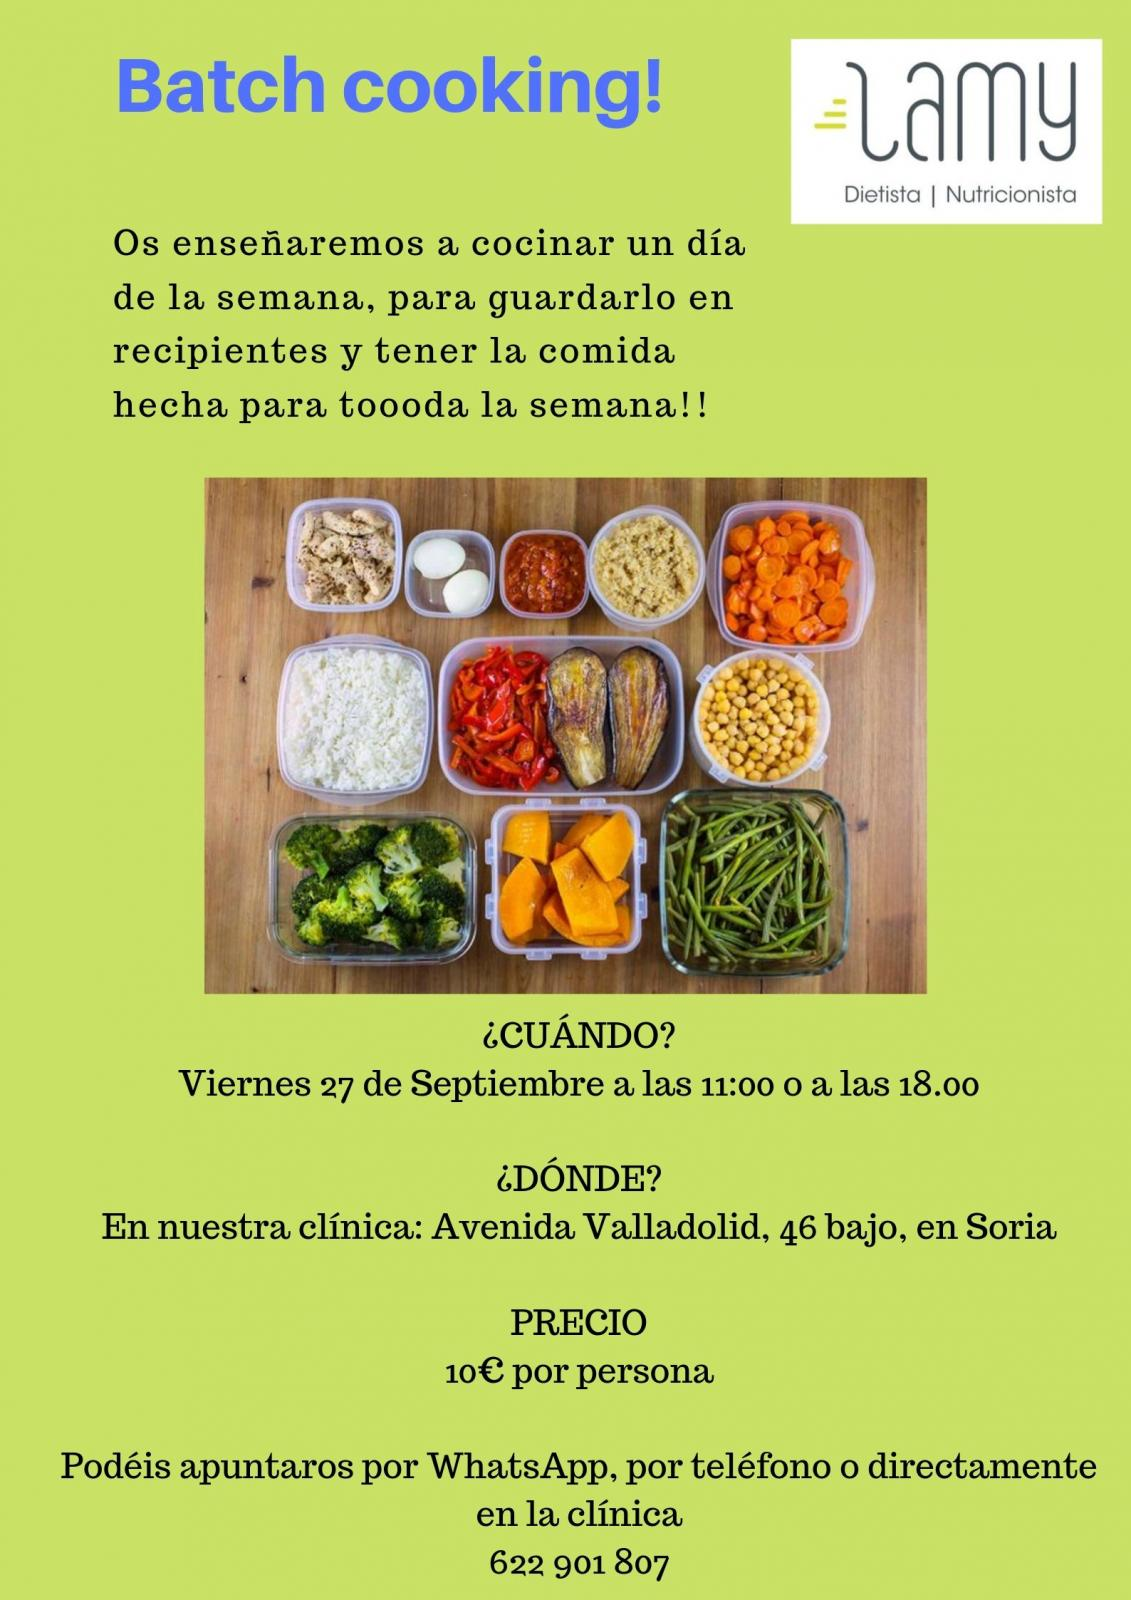 Dietista Nutricionista en Soria: Batch cooking